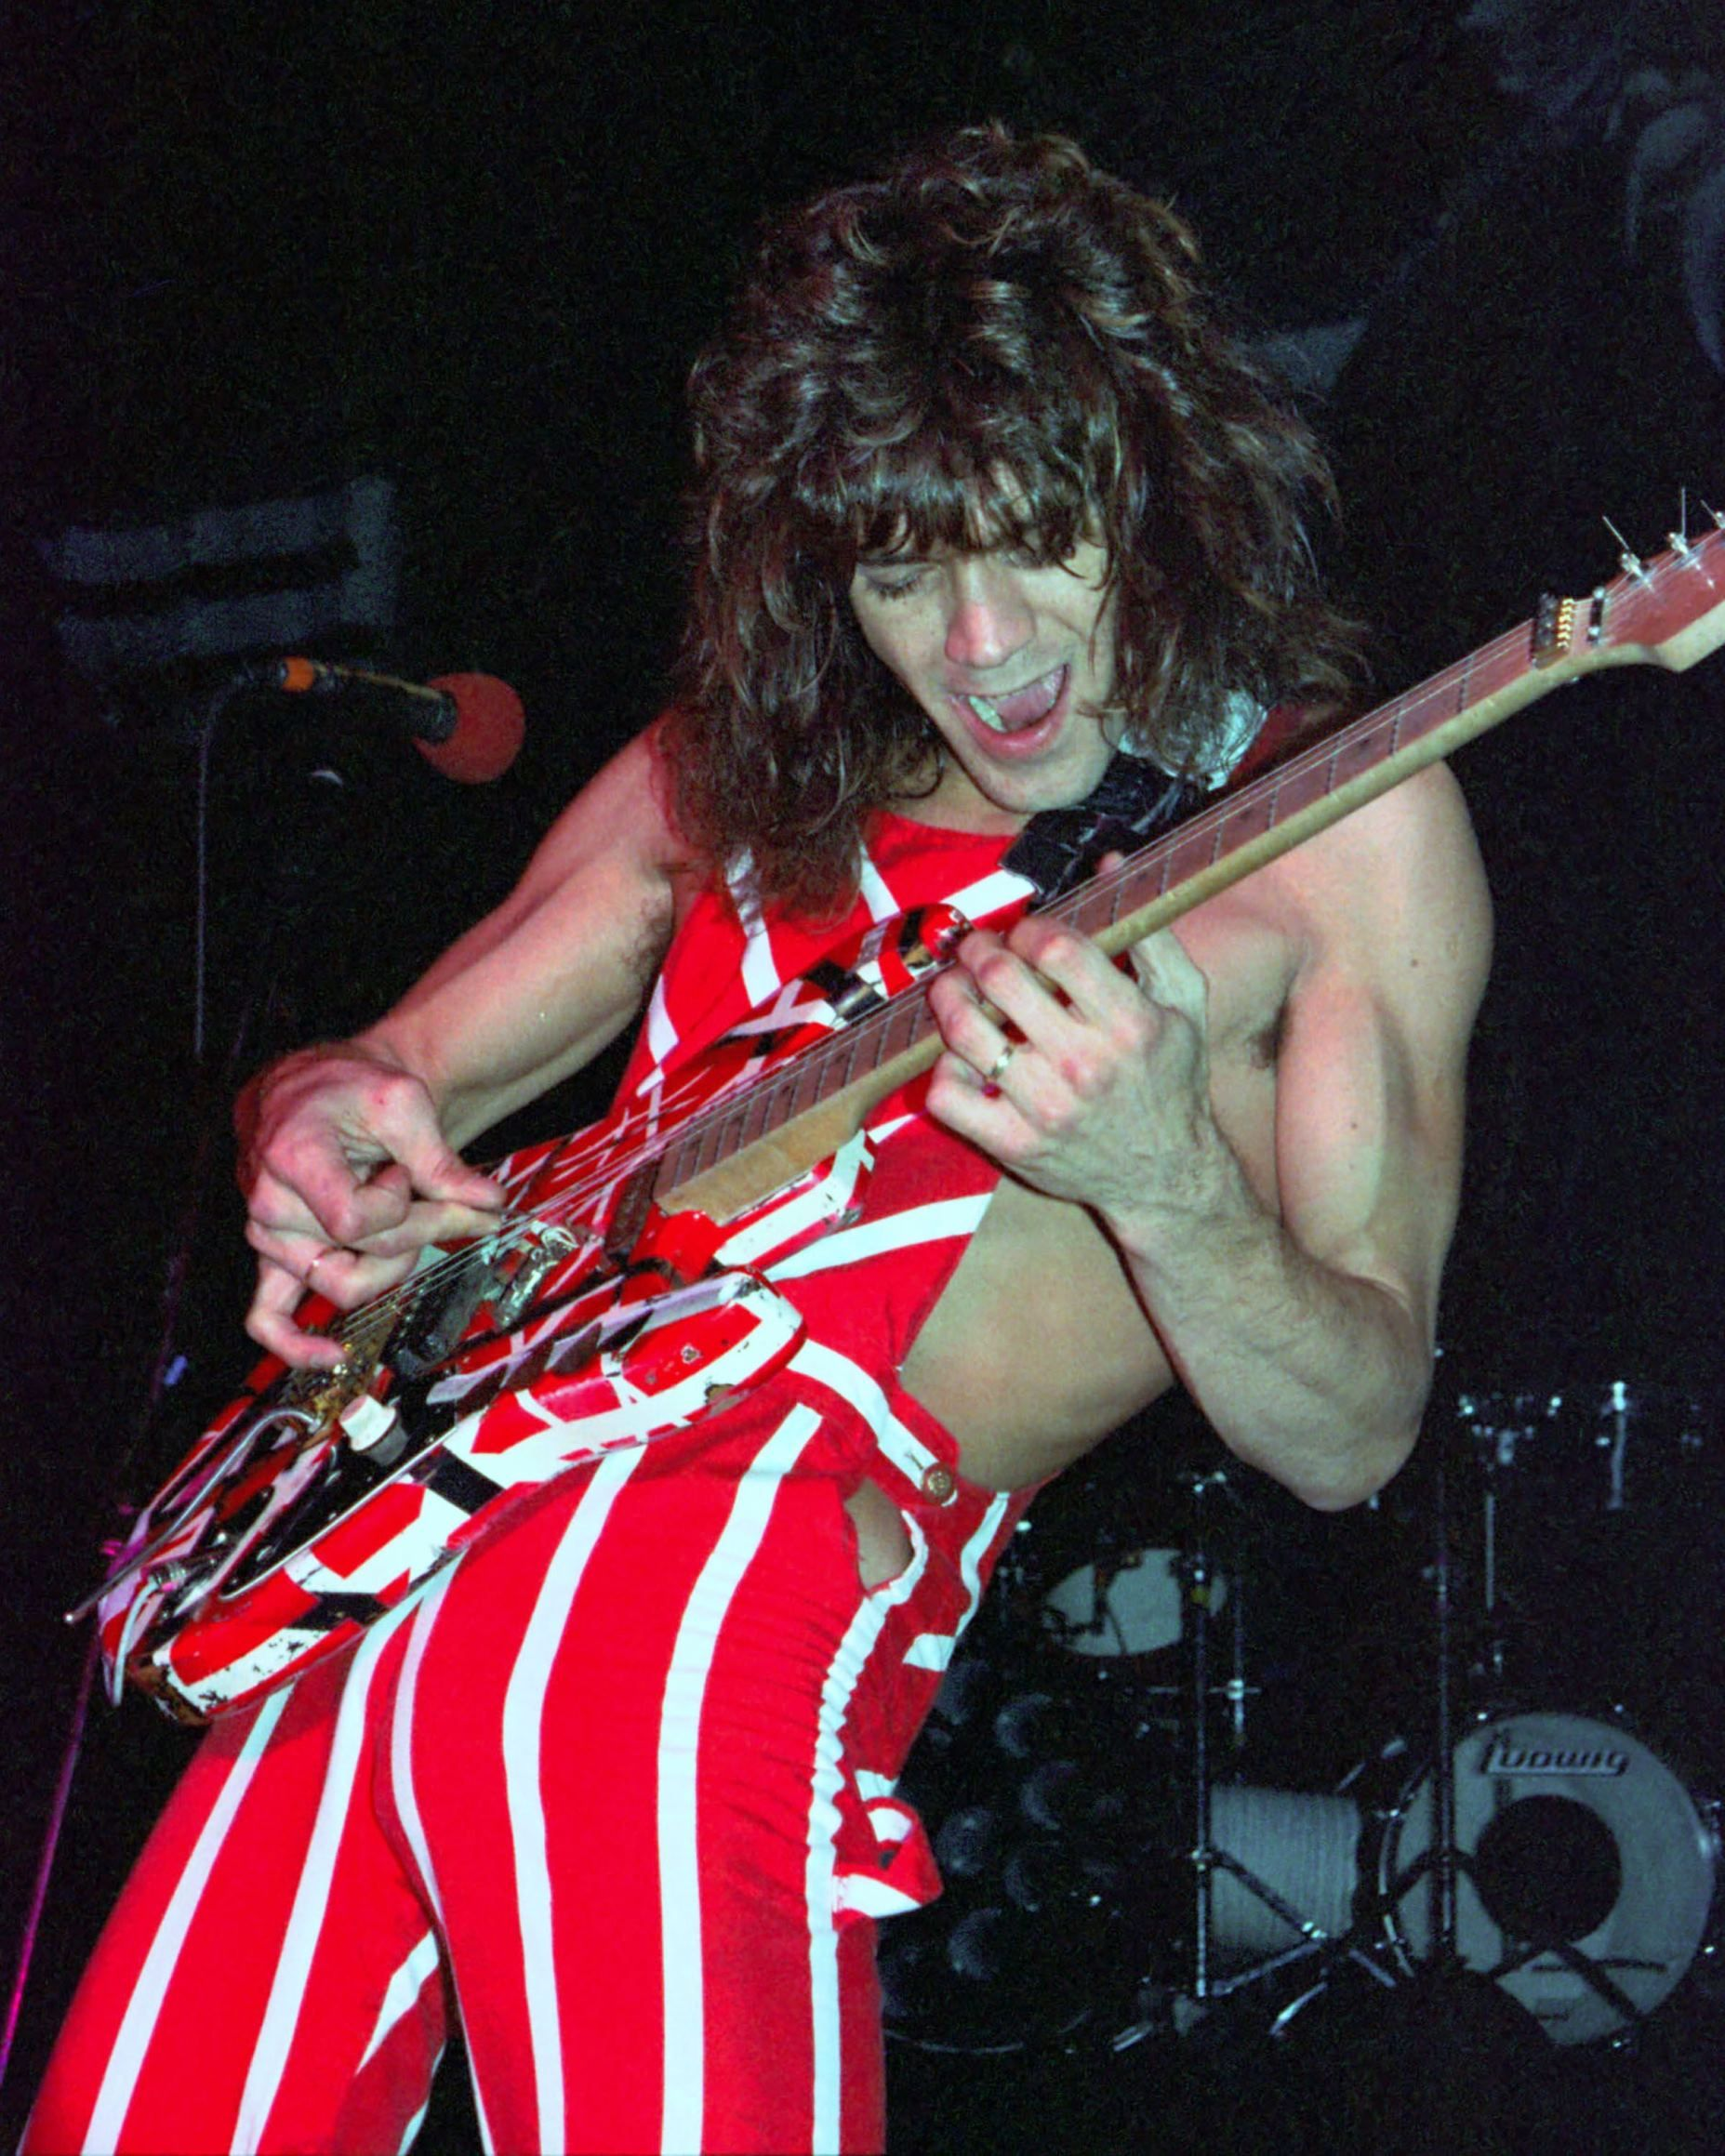 80s Rockers Where Are They Now Gallery Wonderwall Van Halen Eddie Van Halen Rocker